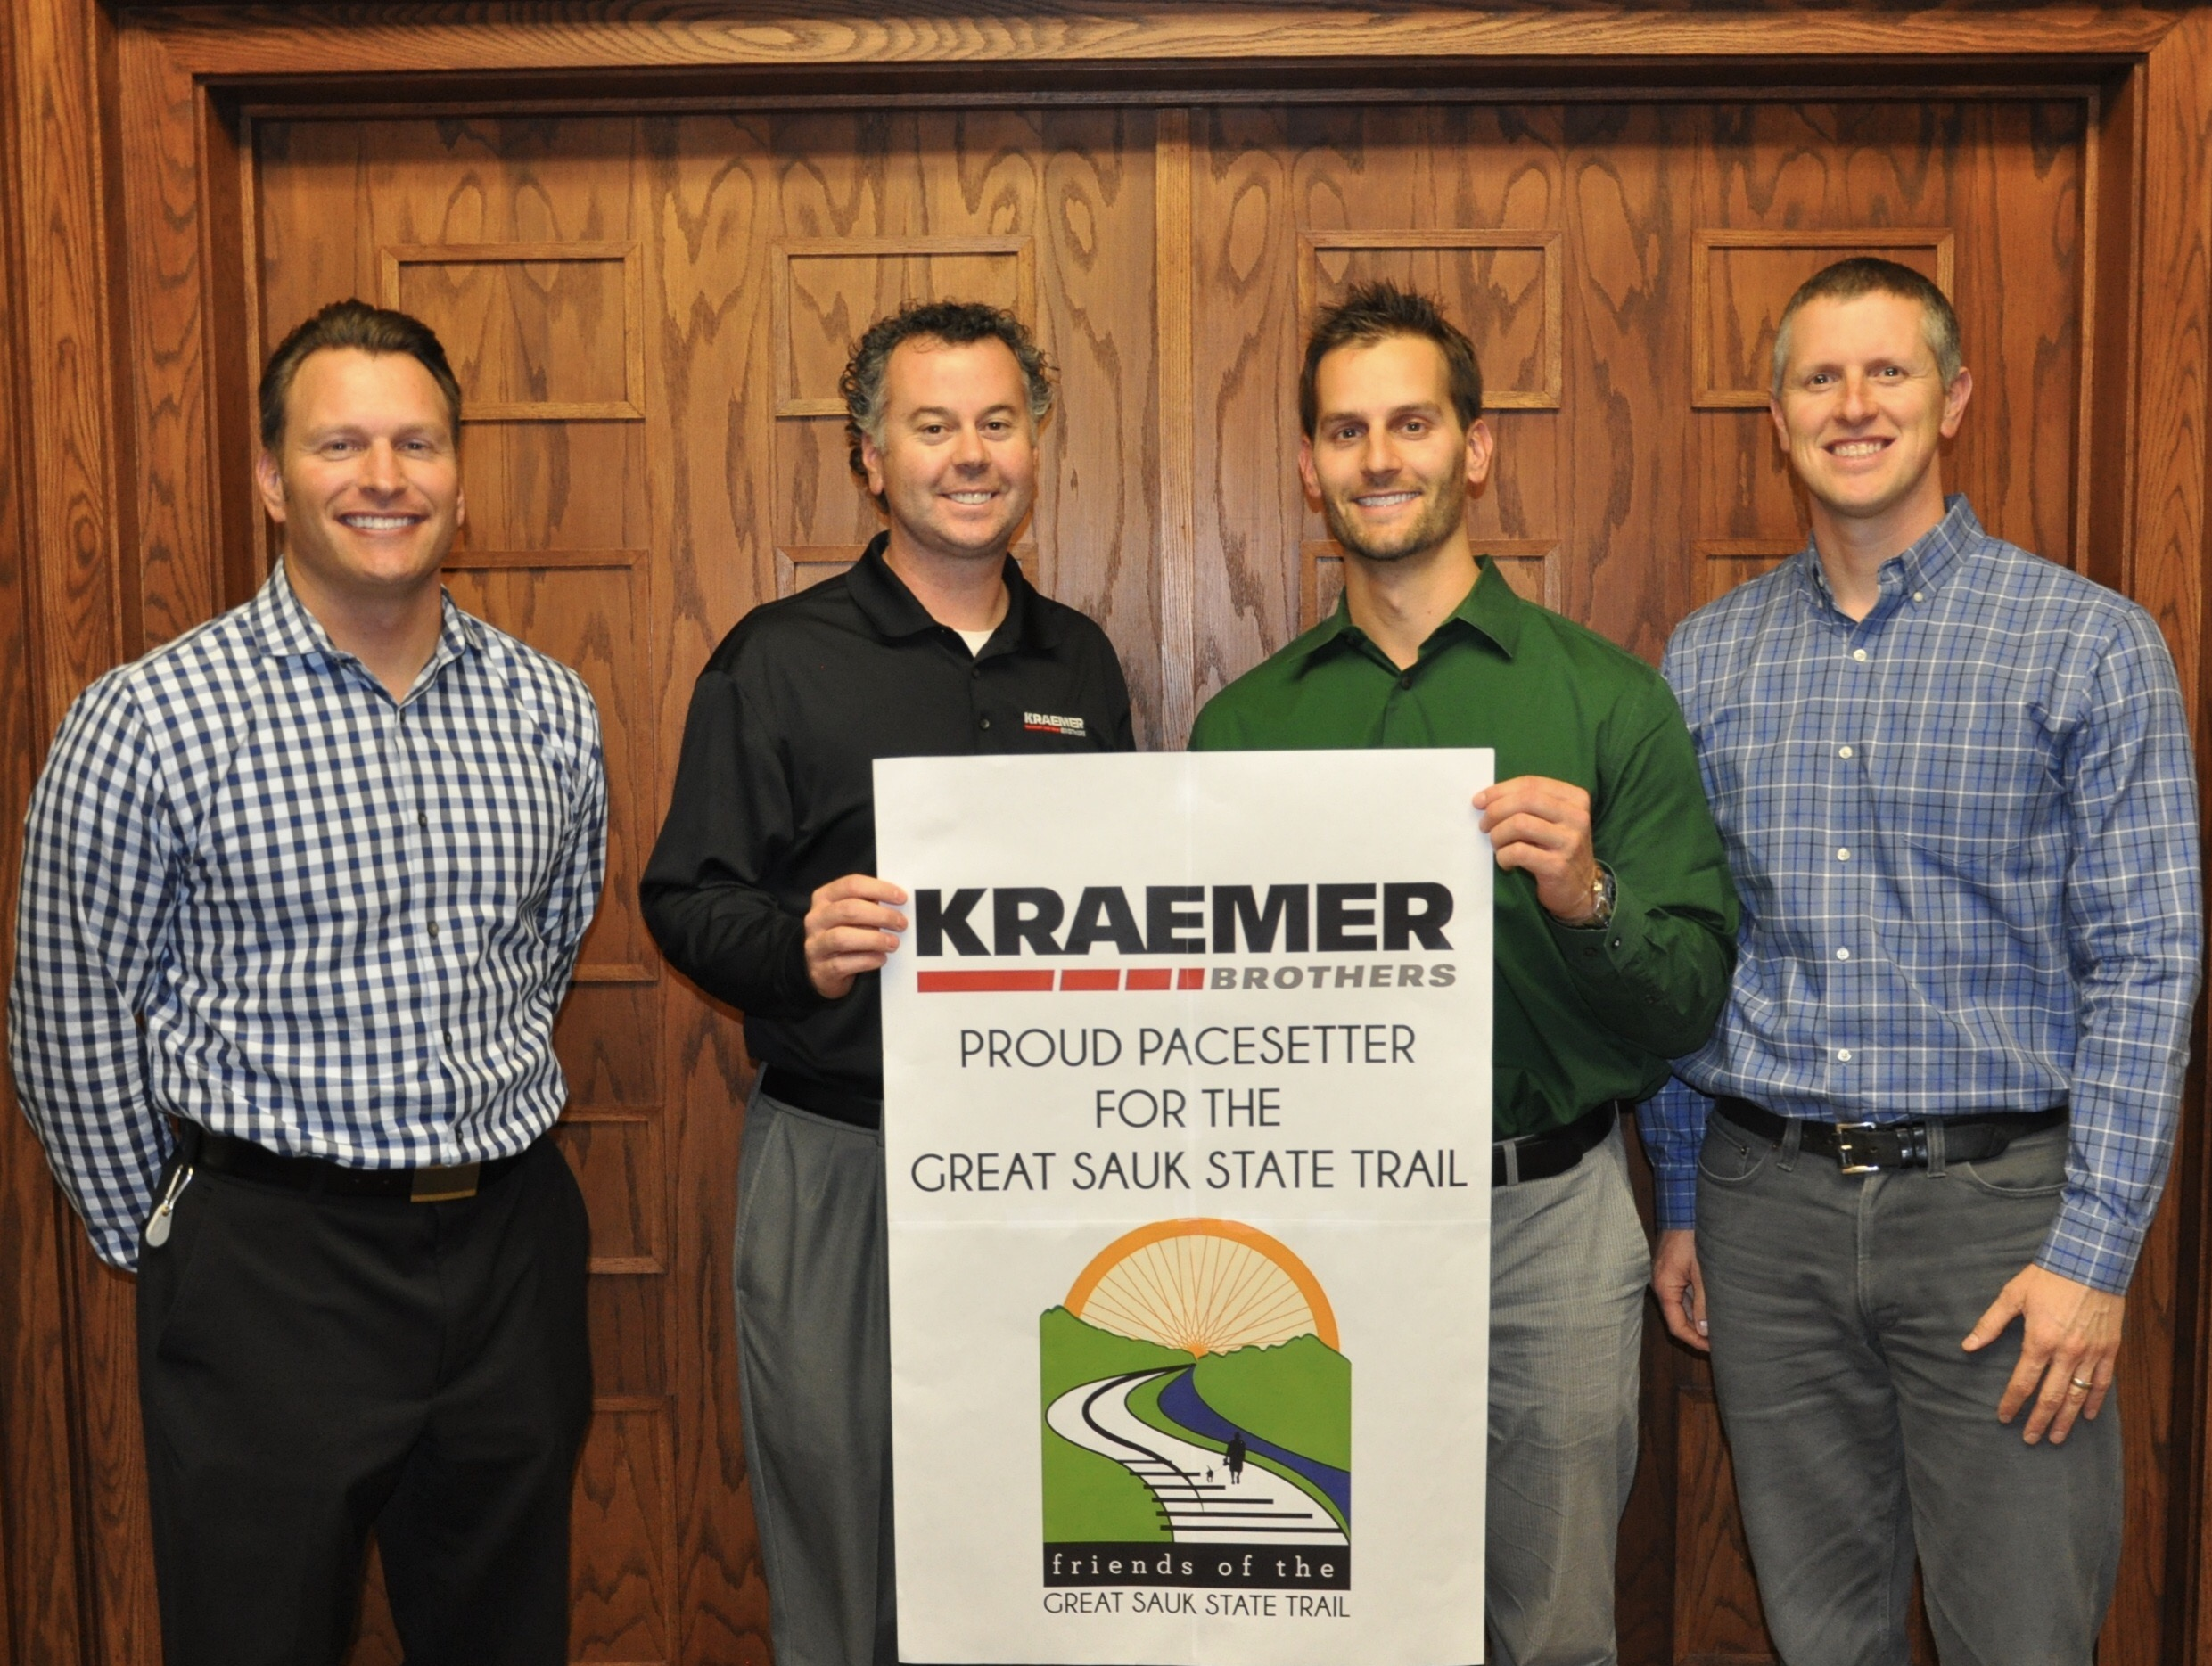 Kraemer Brothers Supports the GSST